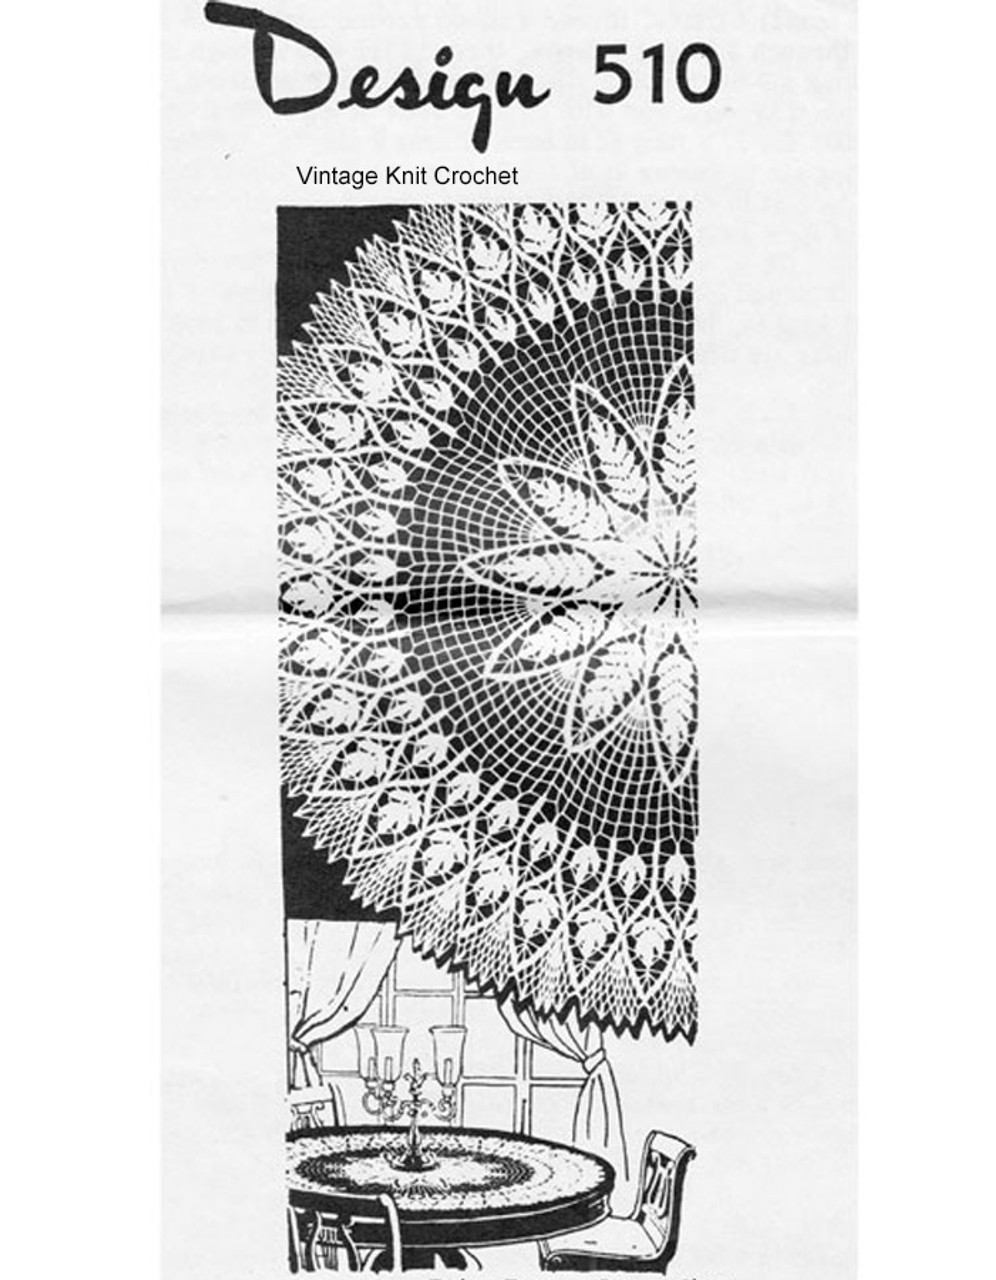 Round crochet tablecloth pattern in Fern Motif, Design 510